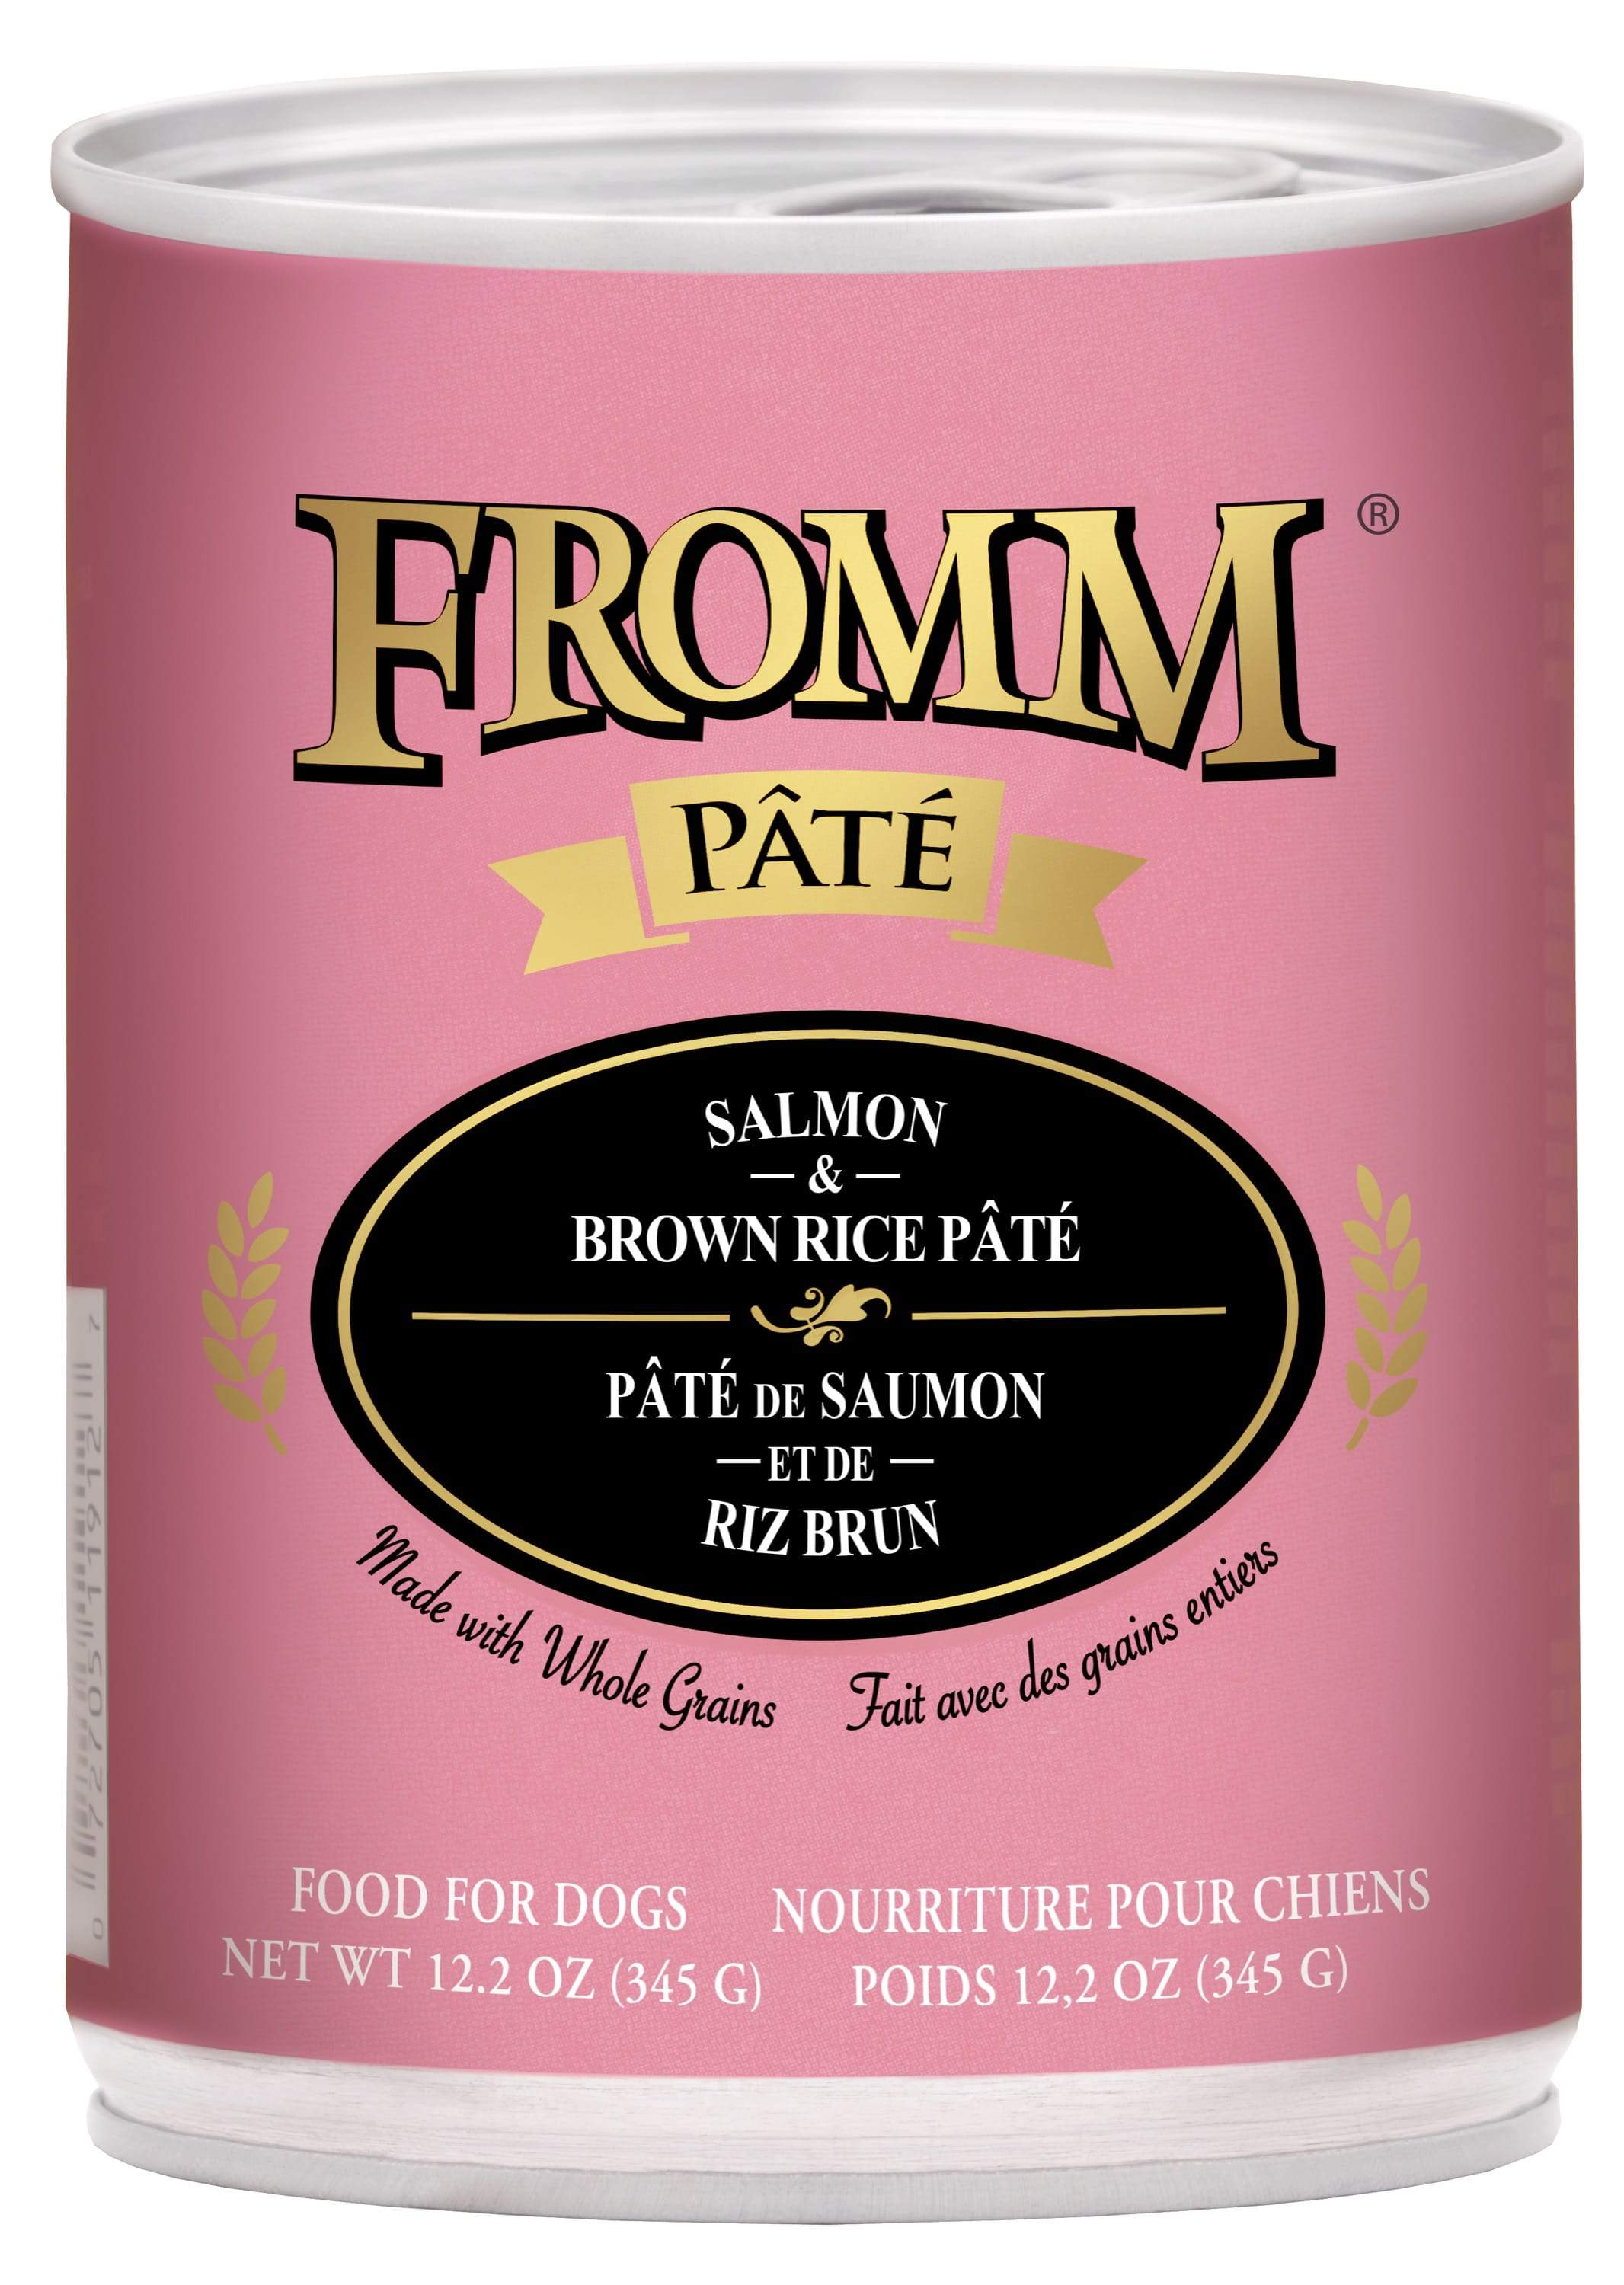 Fromm Salmon & Brown Rice Pâté Food for Dogs - Petsense